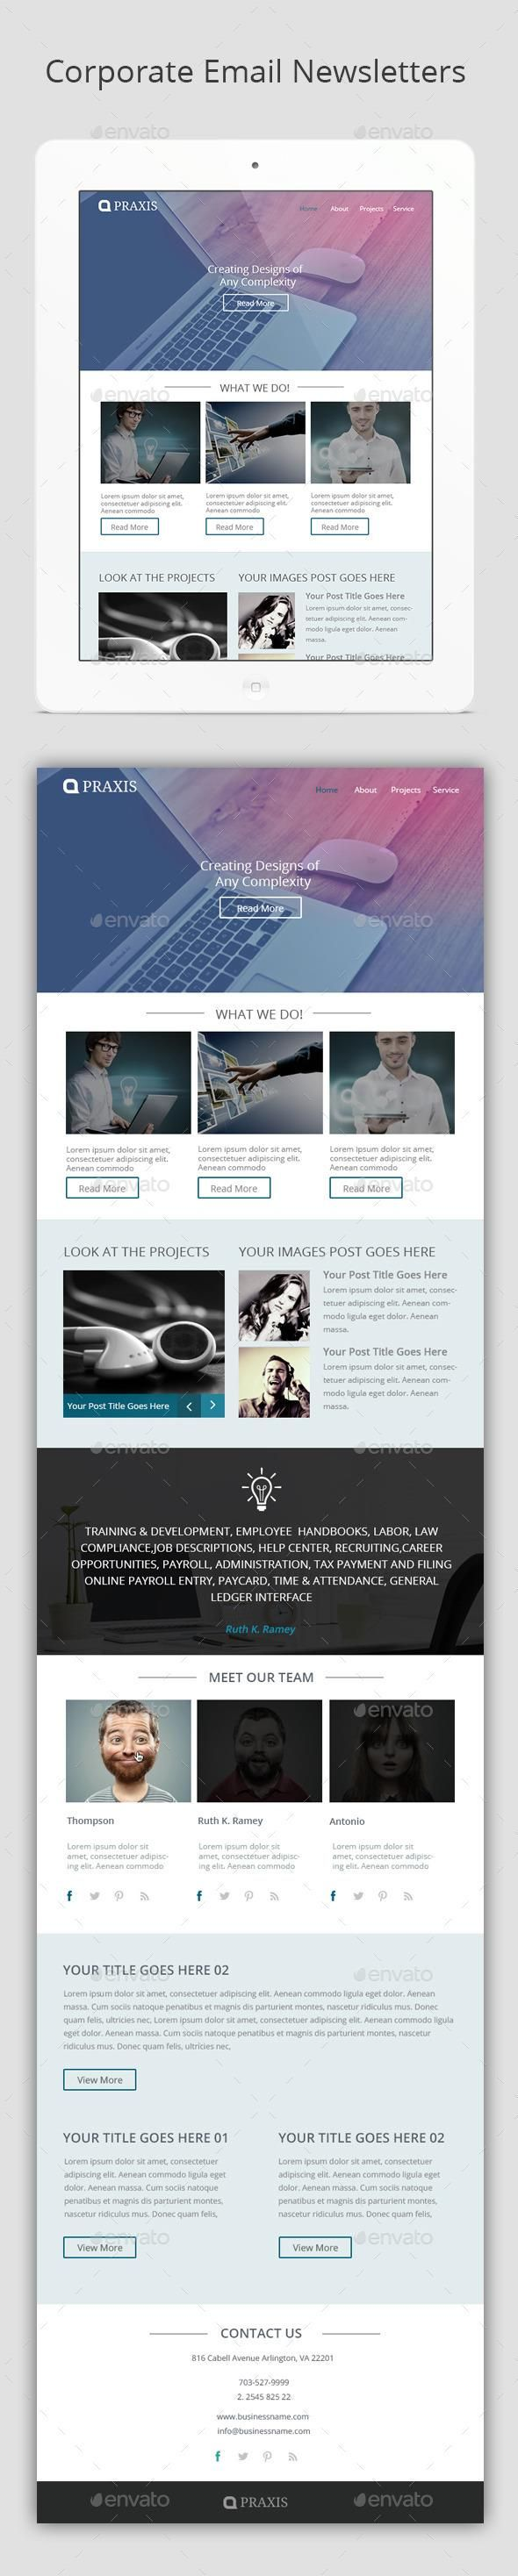 Corporate Email Newsletters  Email Newsletters Email Design And